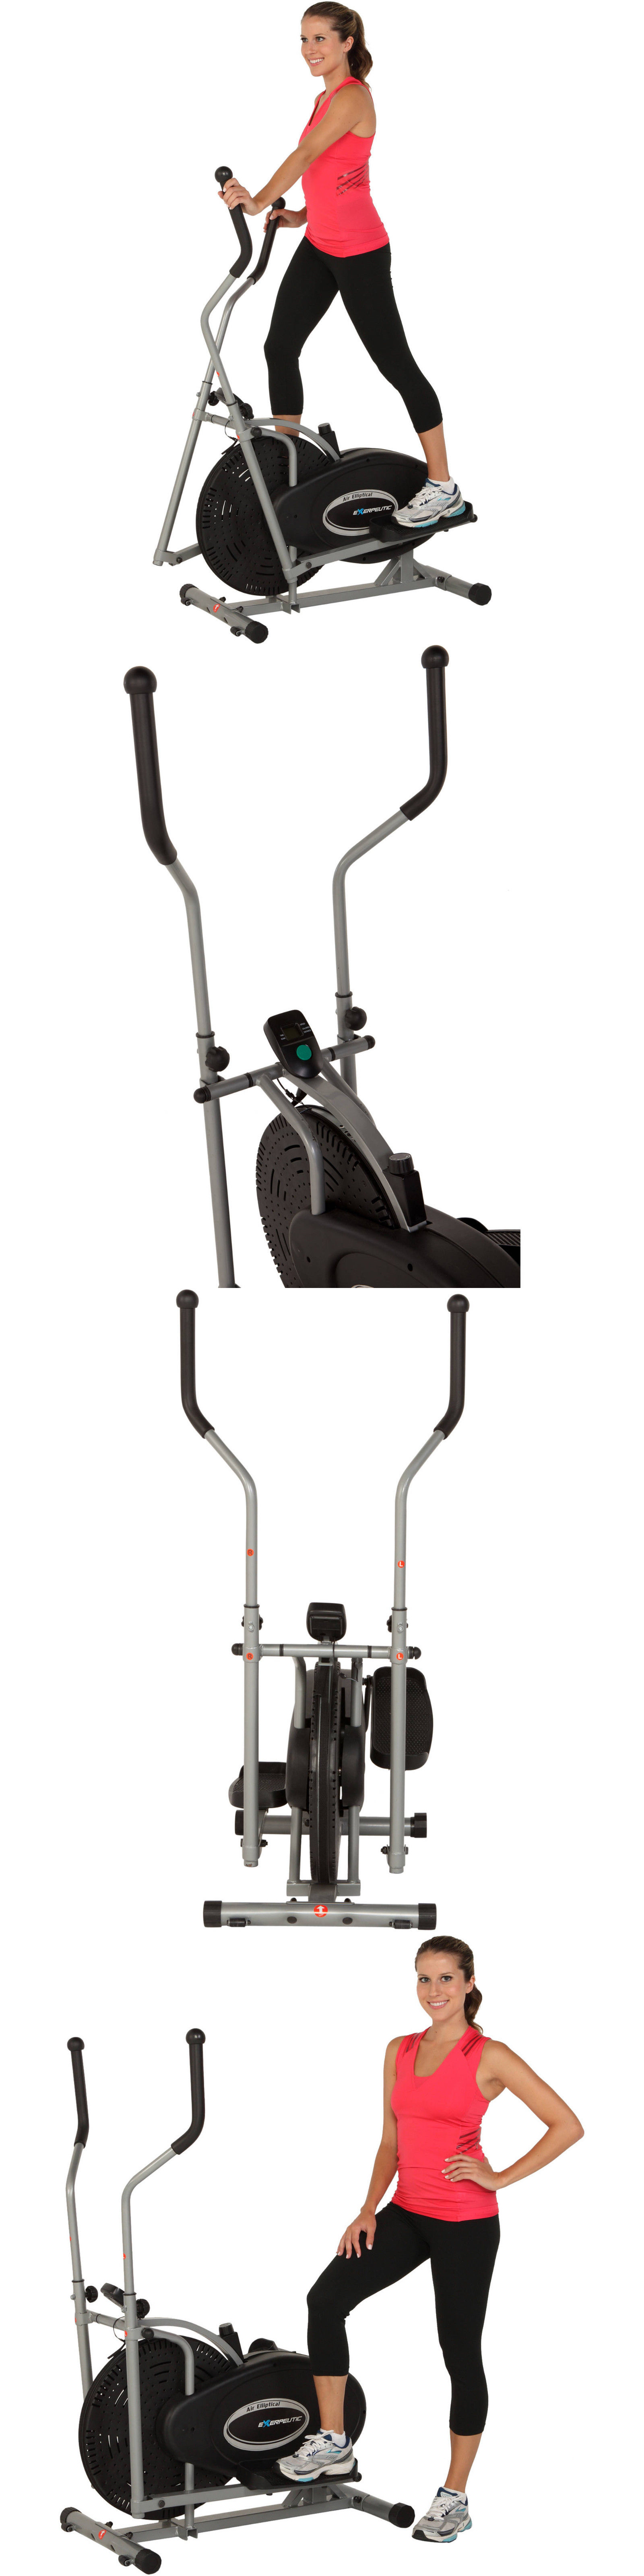 Stair Machines And Steppers 28062: Exerpeutic 260 Air Elliptical   Low  Impact   Aerobic